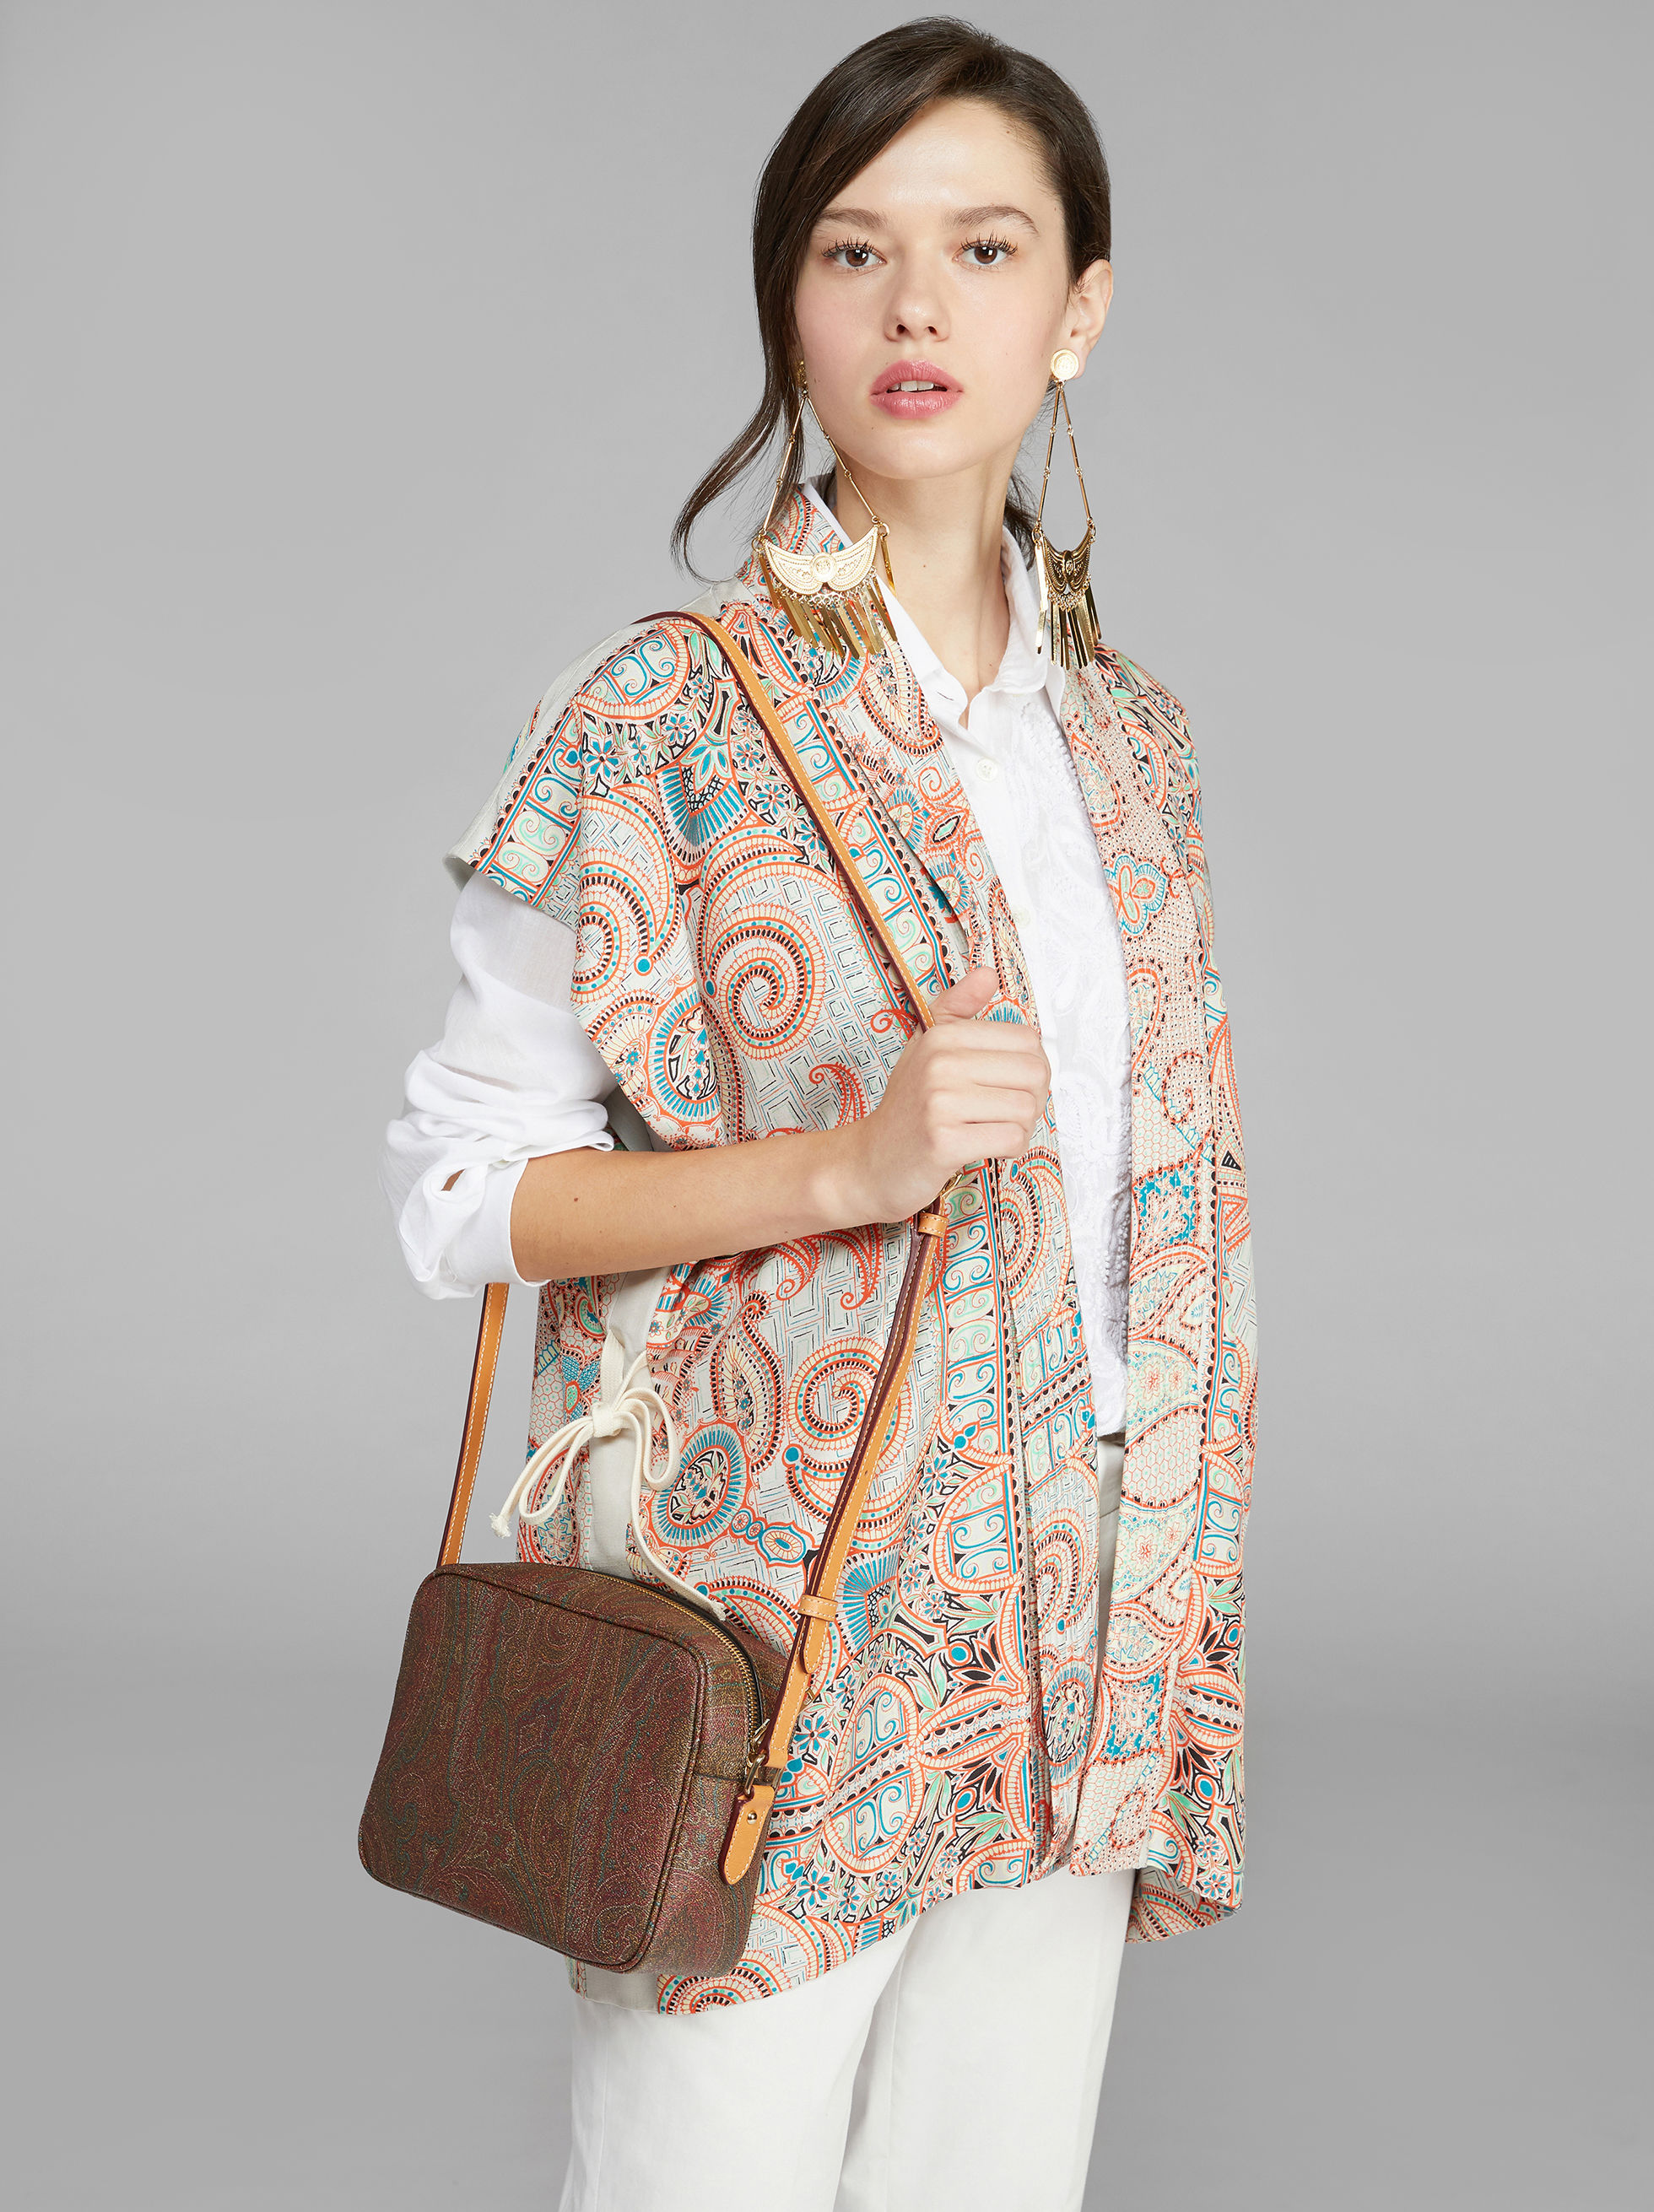 CROSSBODY BAG WITH PAISLEY DESIGNS